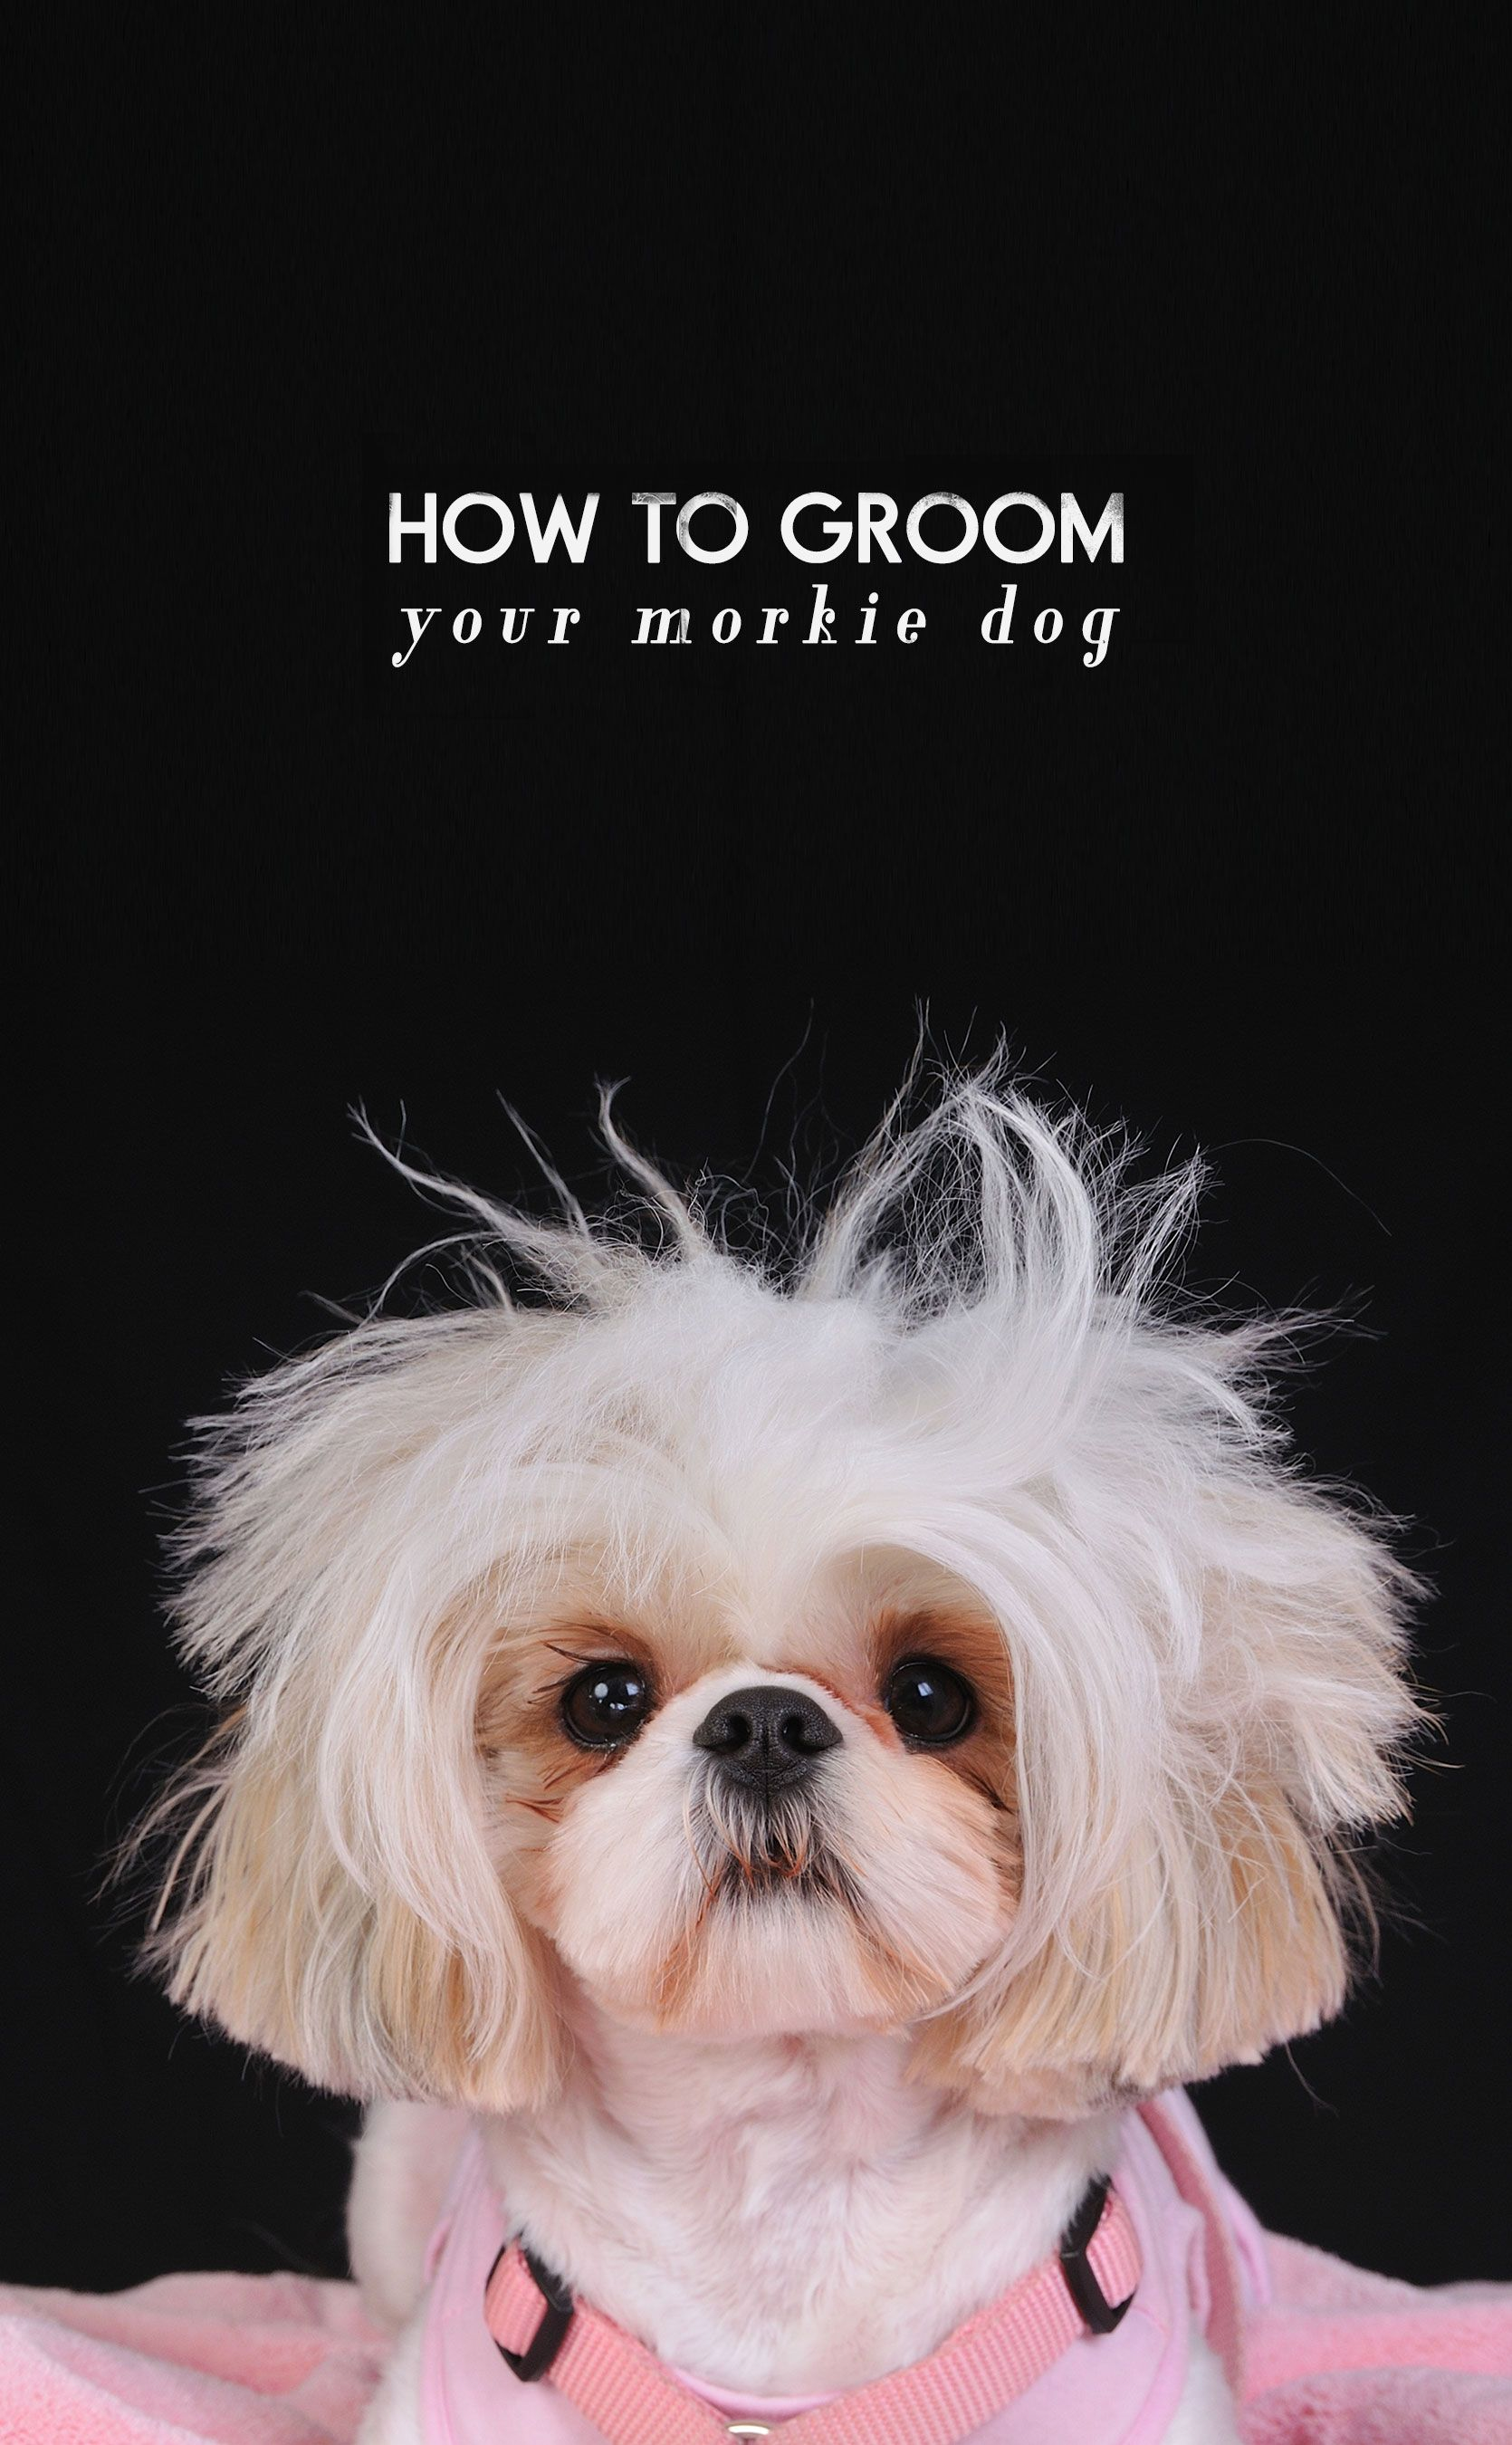 How To Groom A Morkie The Full Step By Step Guide Macie